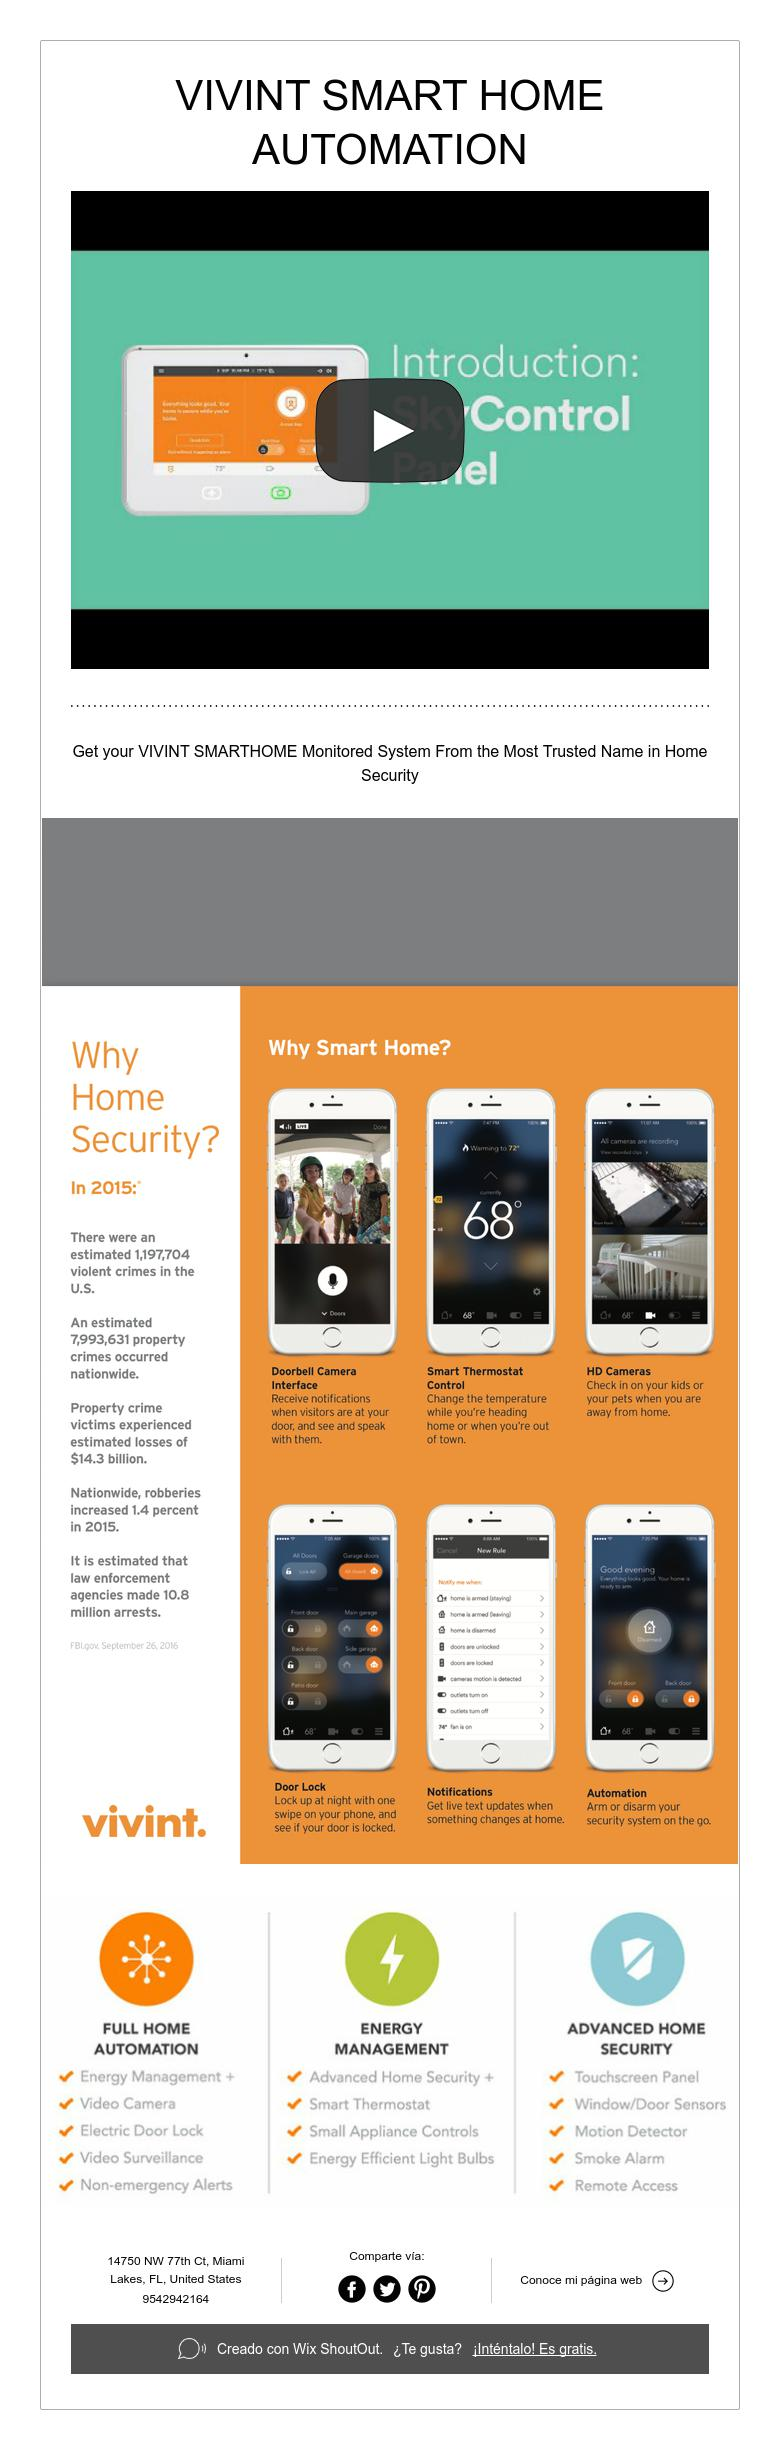 Vivint Smart Home Automation Job Opportunity Smart Home Automation Smart Home Home Automation